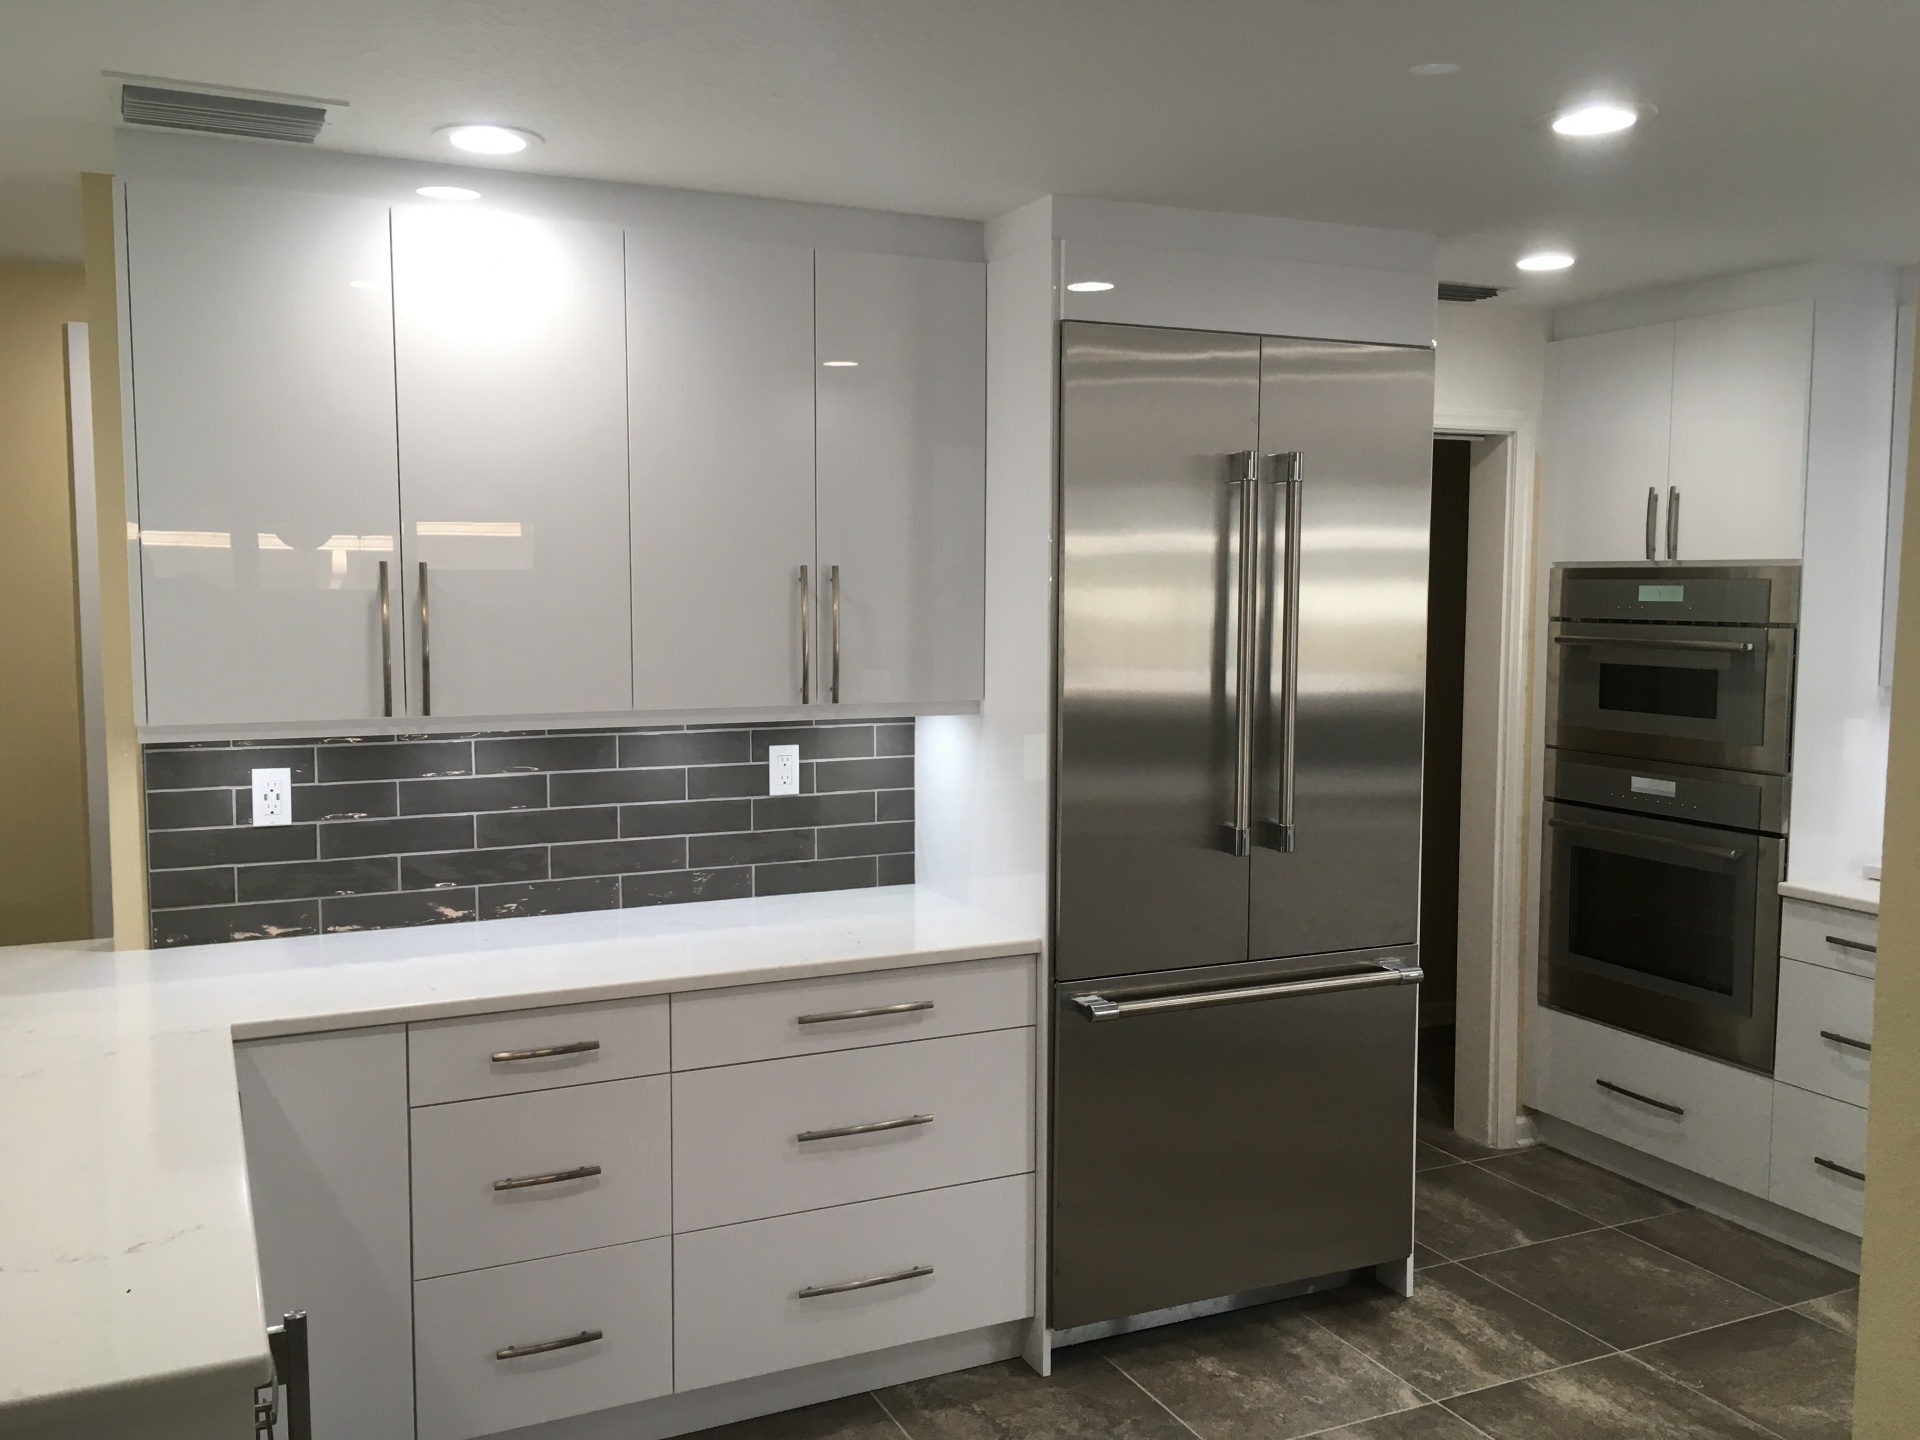 Custom made White Acrylic kitchen cabinets with cabinet depth refrigerator.